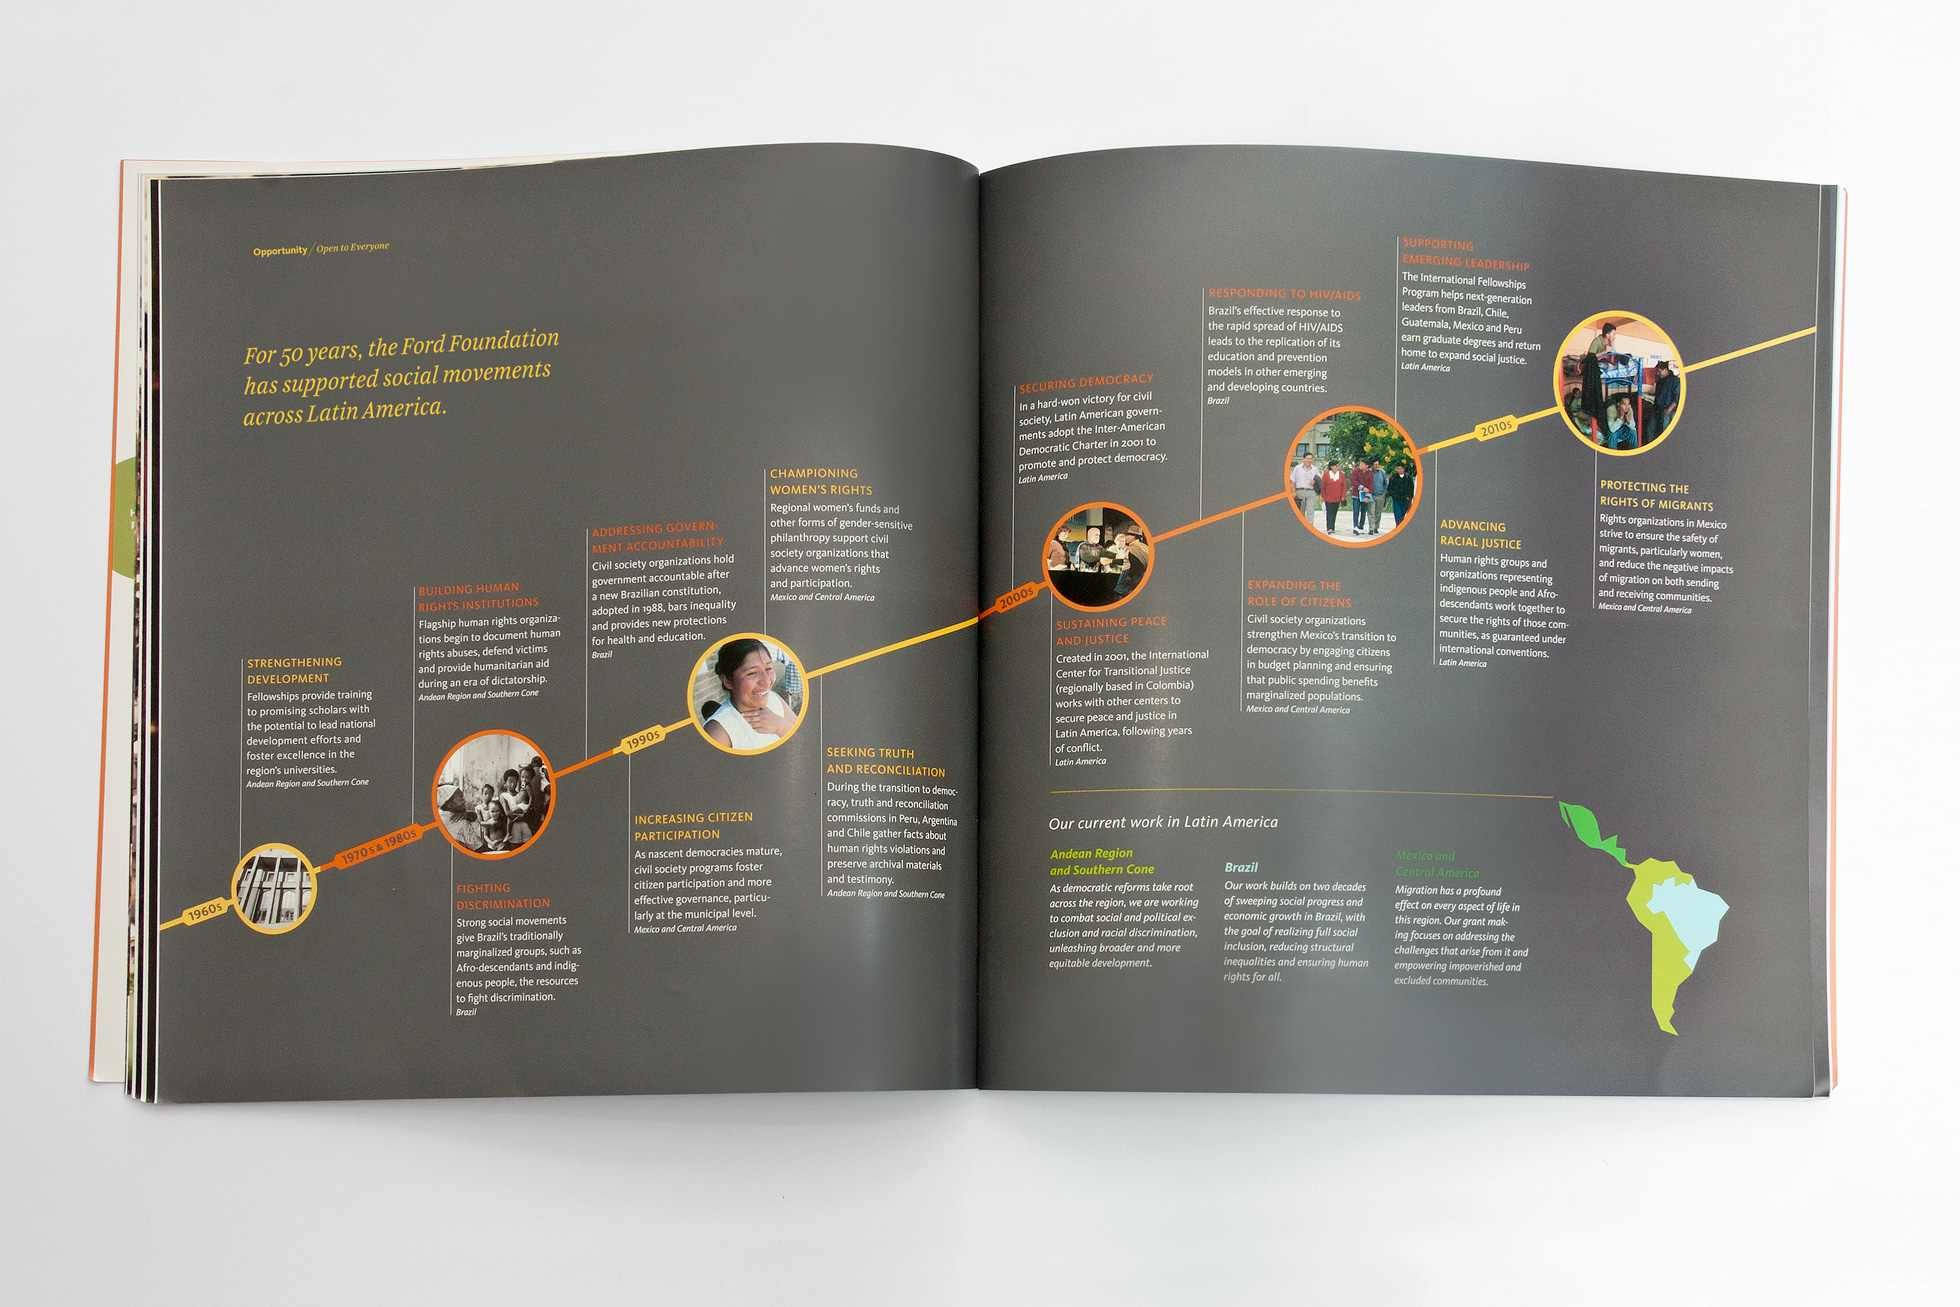 Ford Foundation Annual Report TIMELINE2 | Ford foundation ...